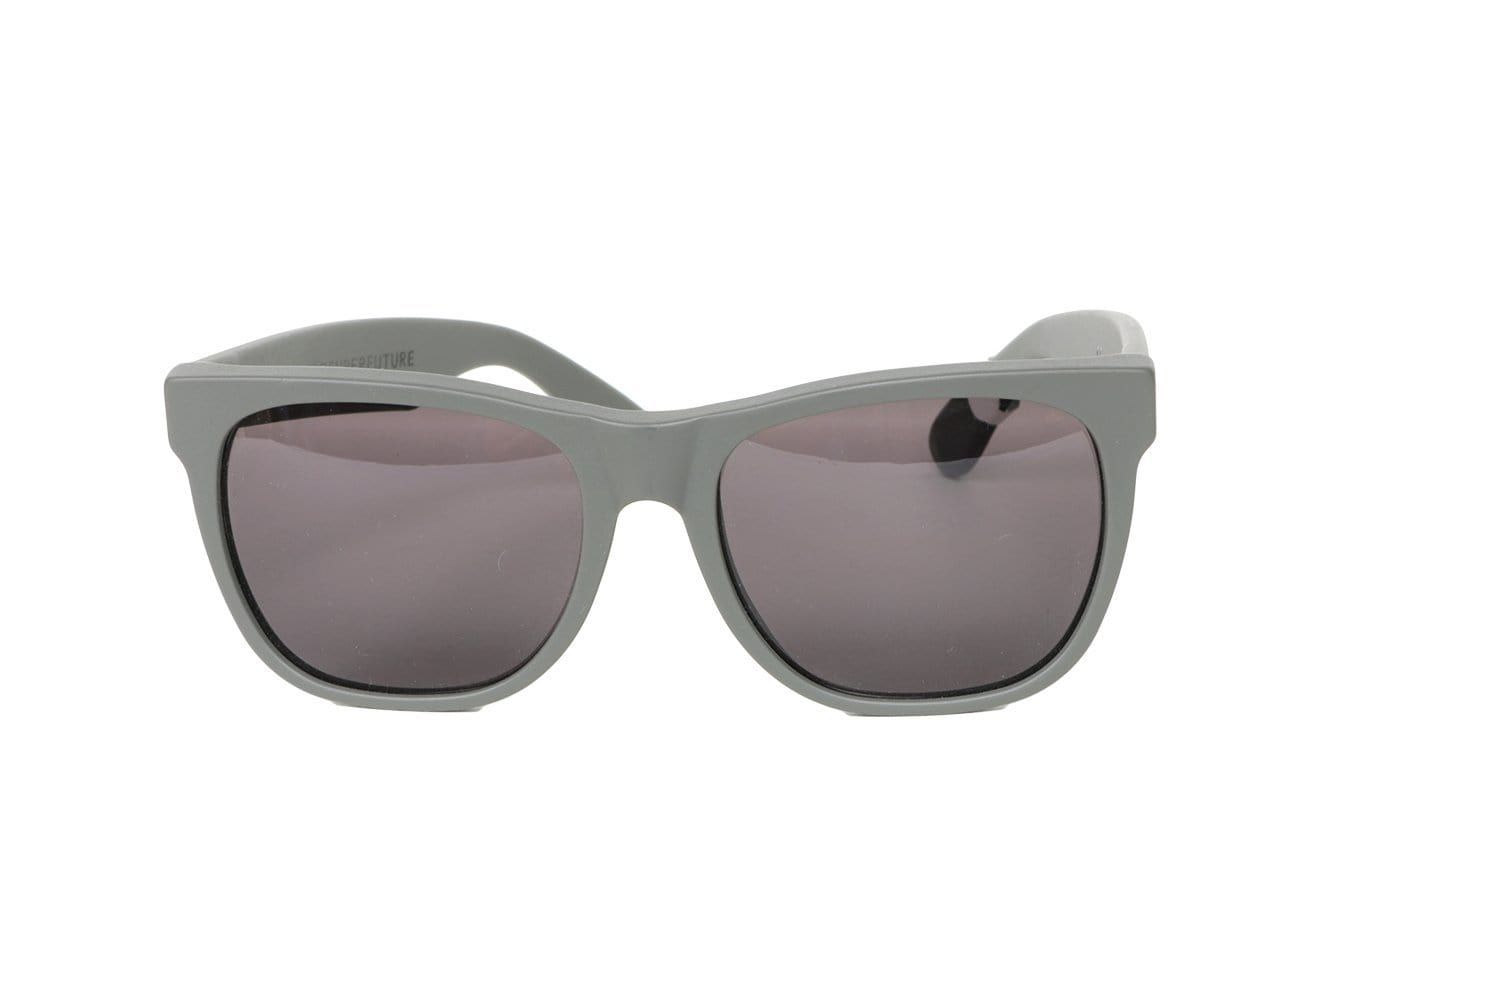 BASIC GREY MATTE SUNGLASSES SUNGLASSES SUPER